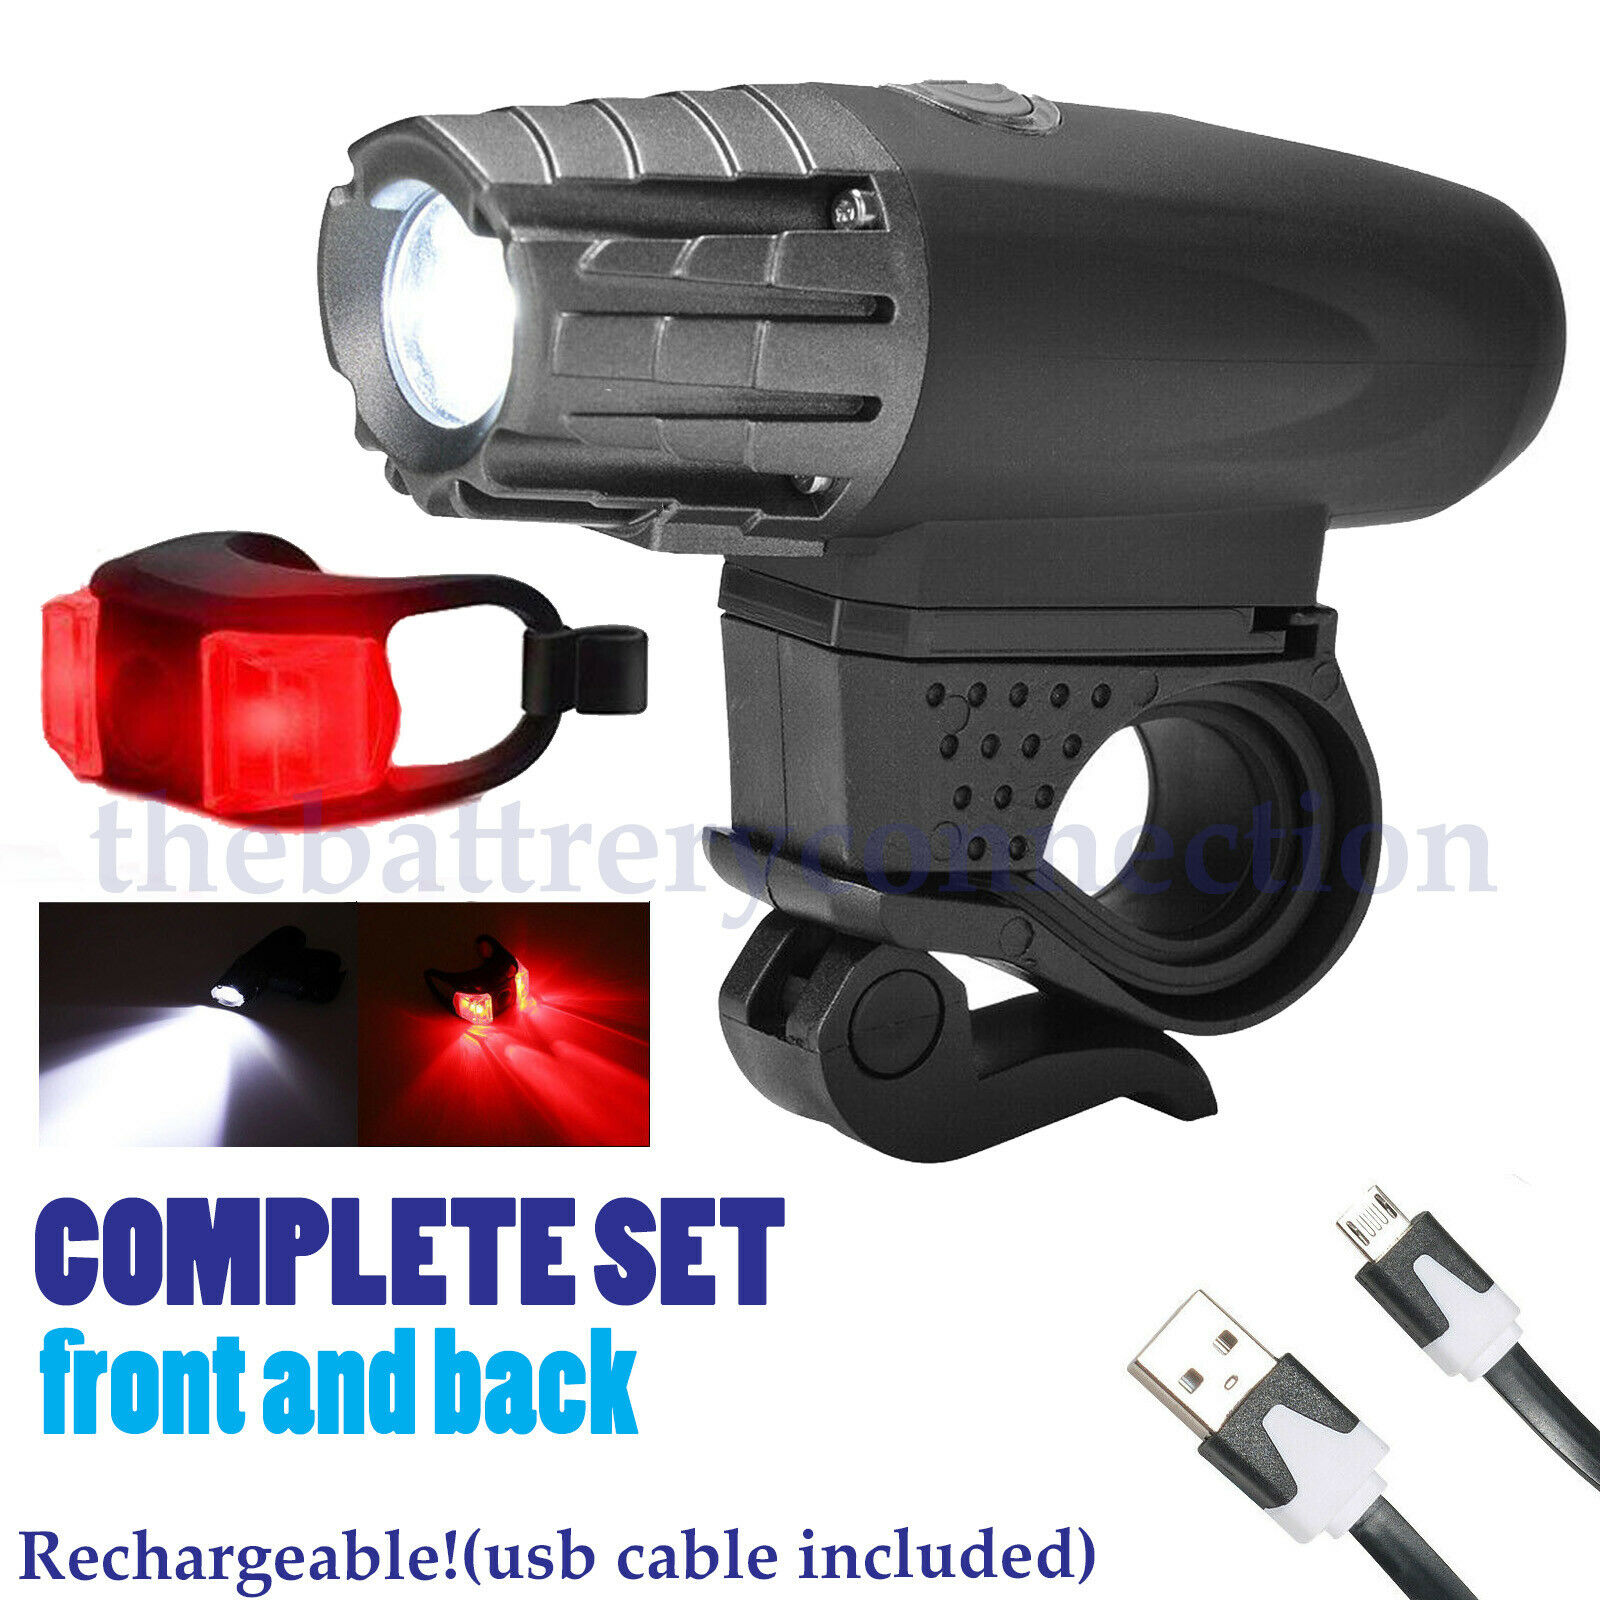 5000 Lumen 8.4V Rechargeable Cycling Light Bicycle Bike LED Front Rear Lamp Set Bicycle Accessories